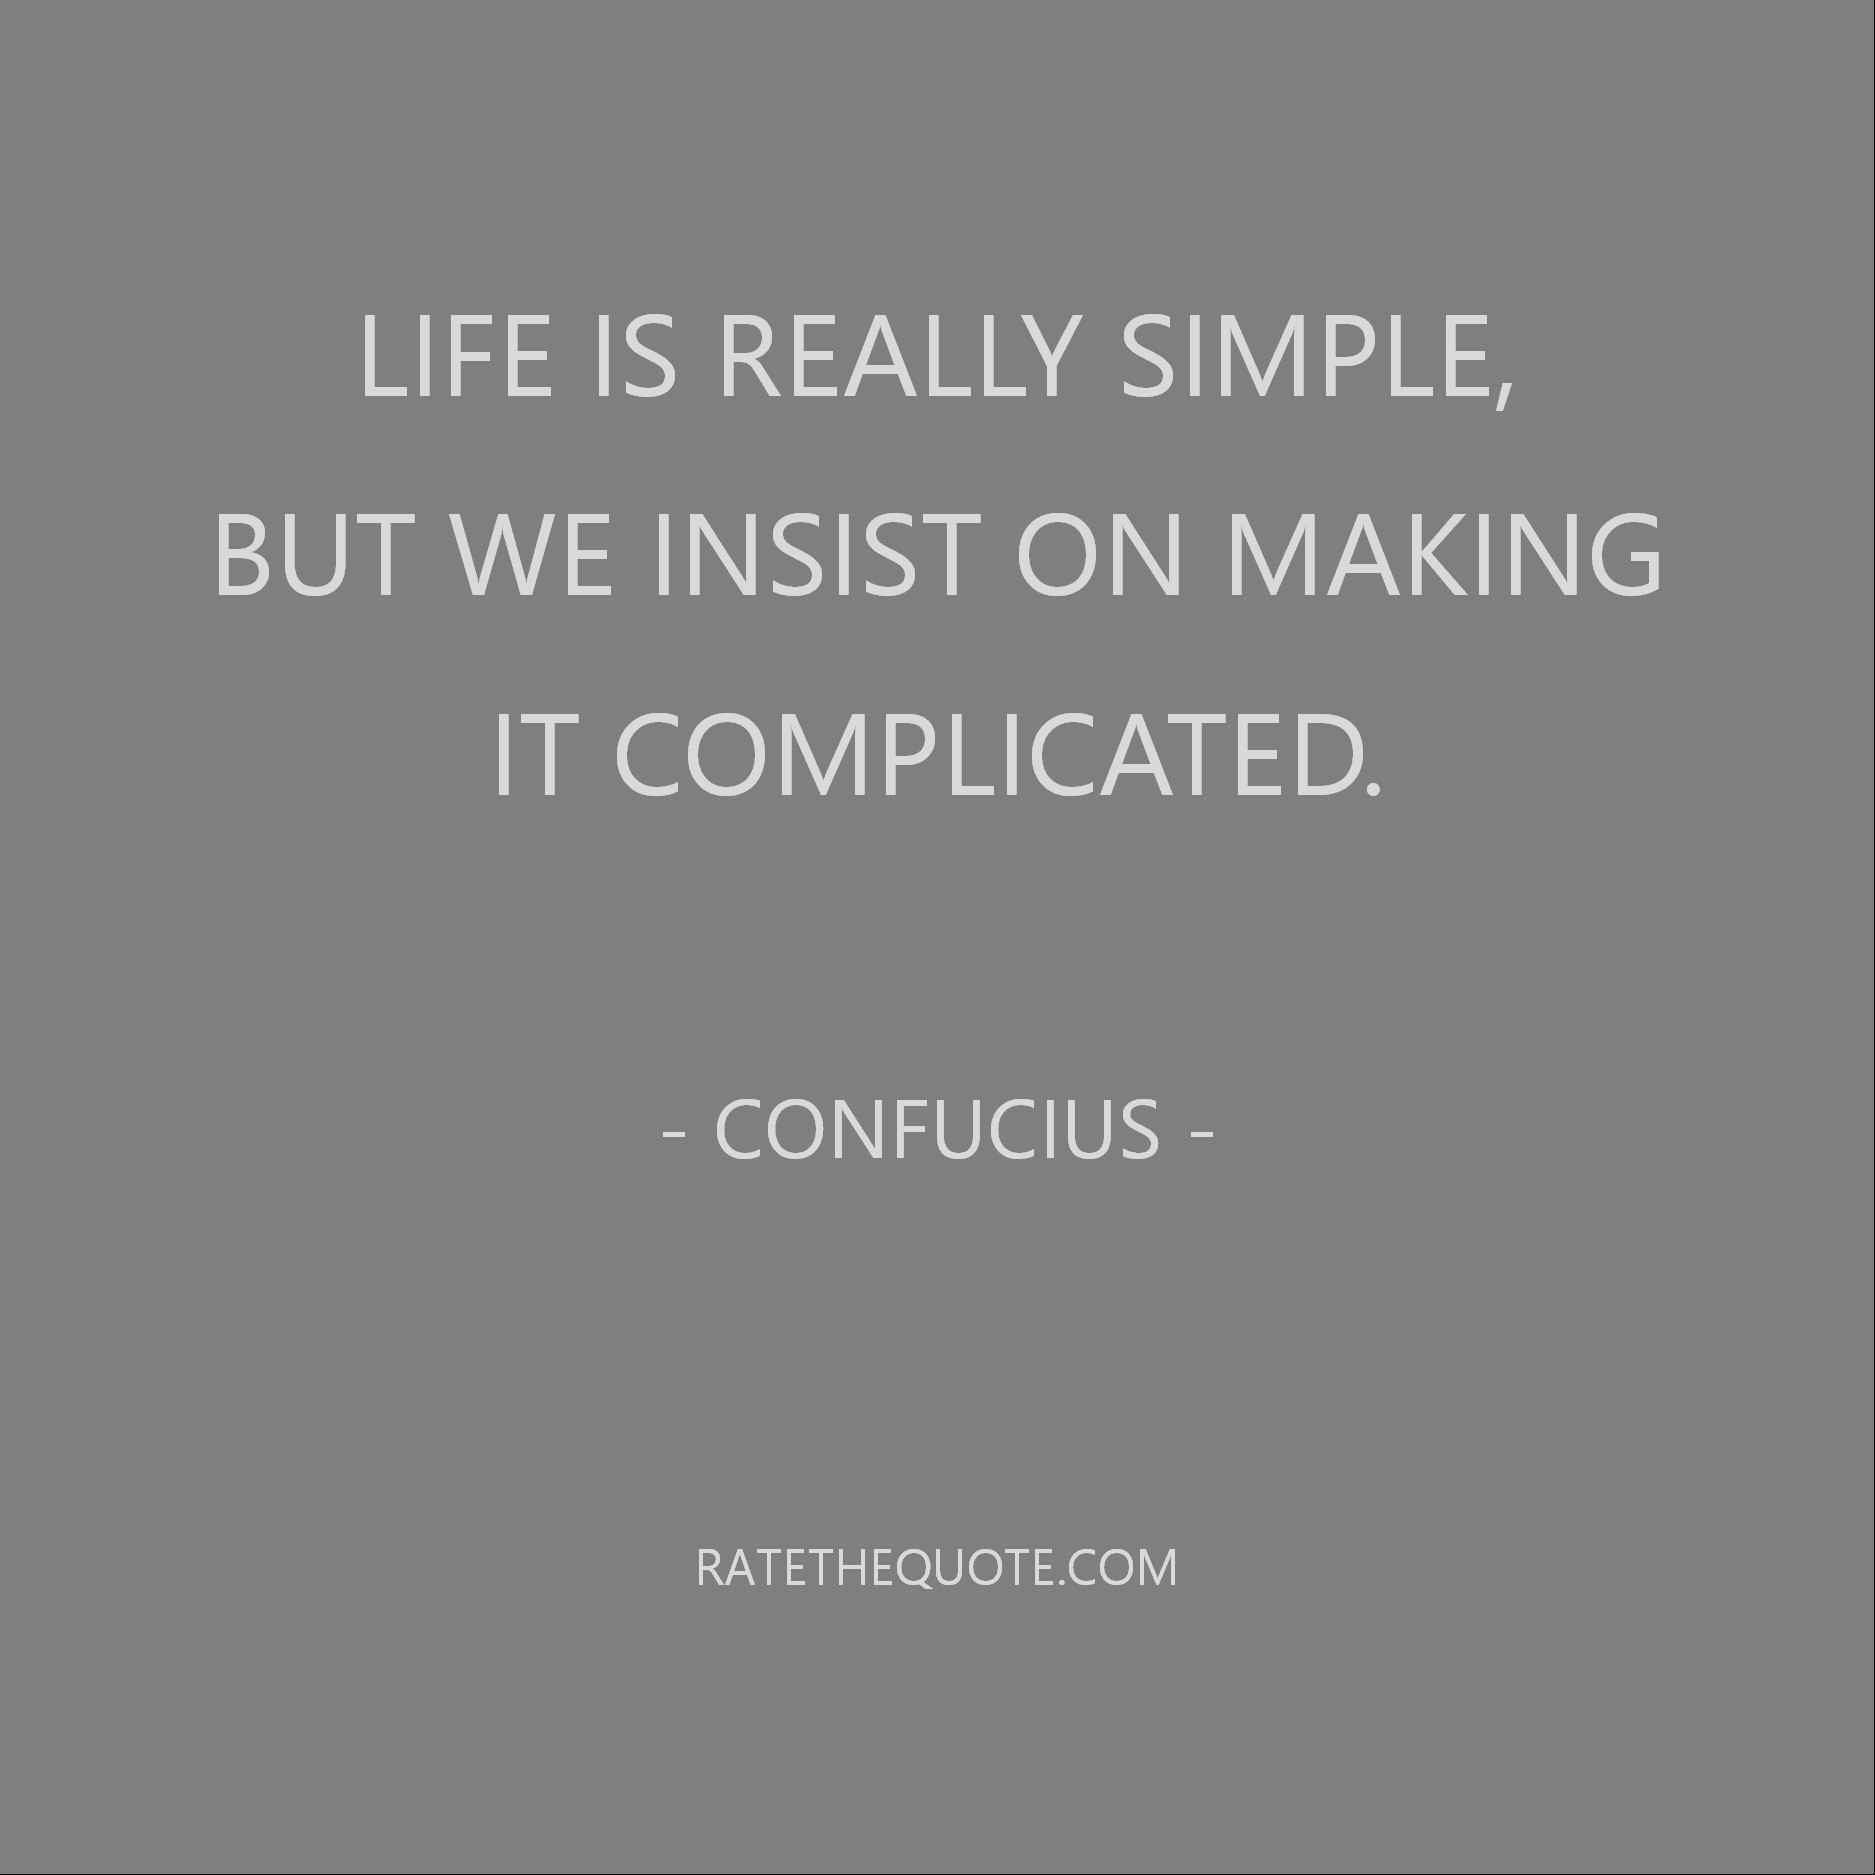 Life is really simple, but we insist on making it complicated. Confucius